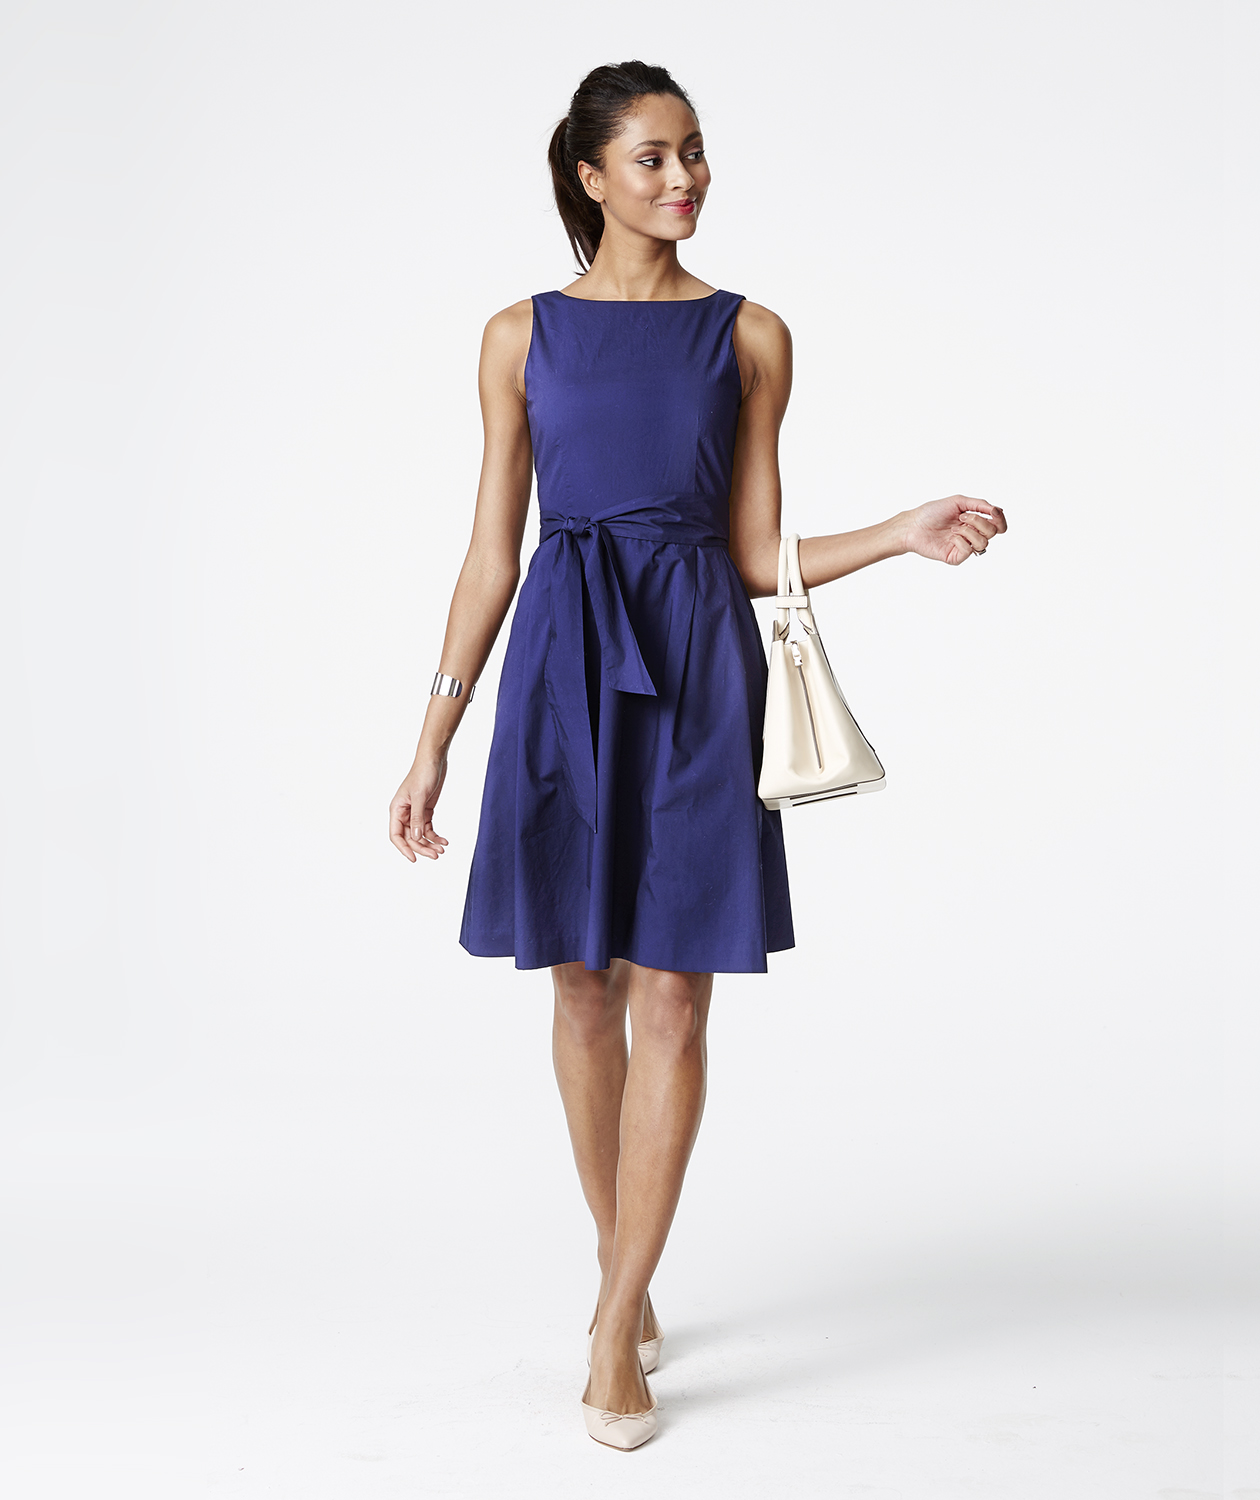 L.L. Bean Signature Poplin Dress